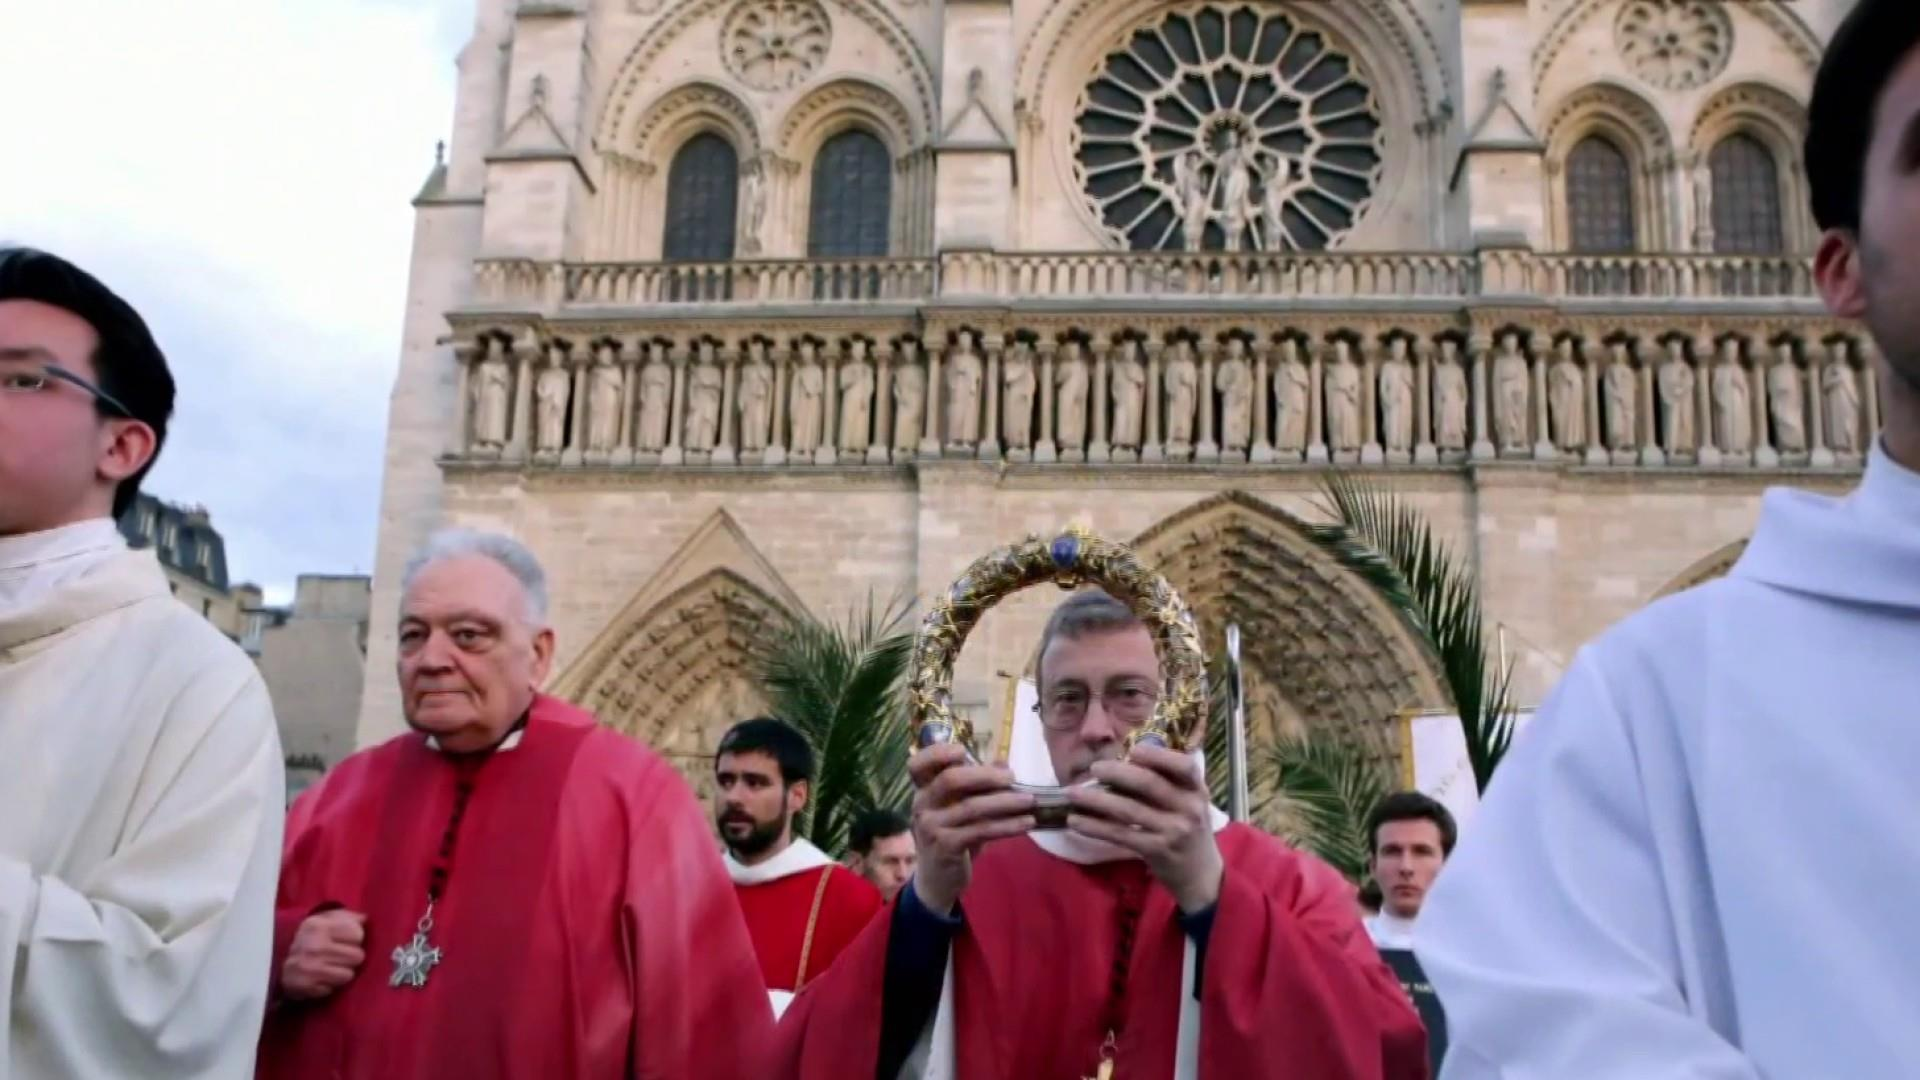 Notre Dame calls everyone to something greater, says priest